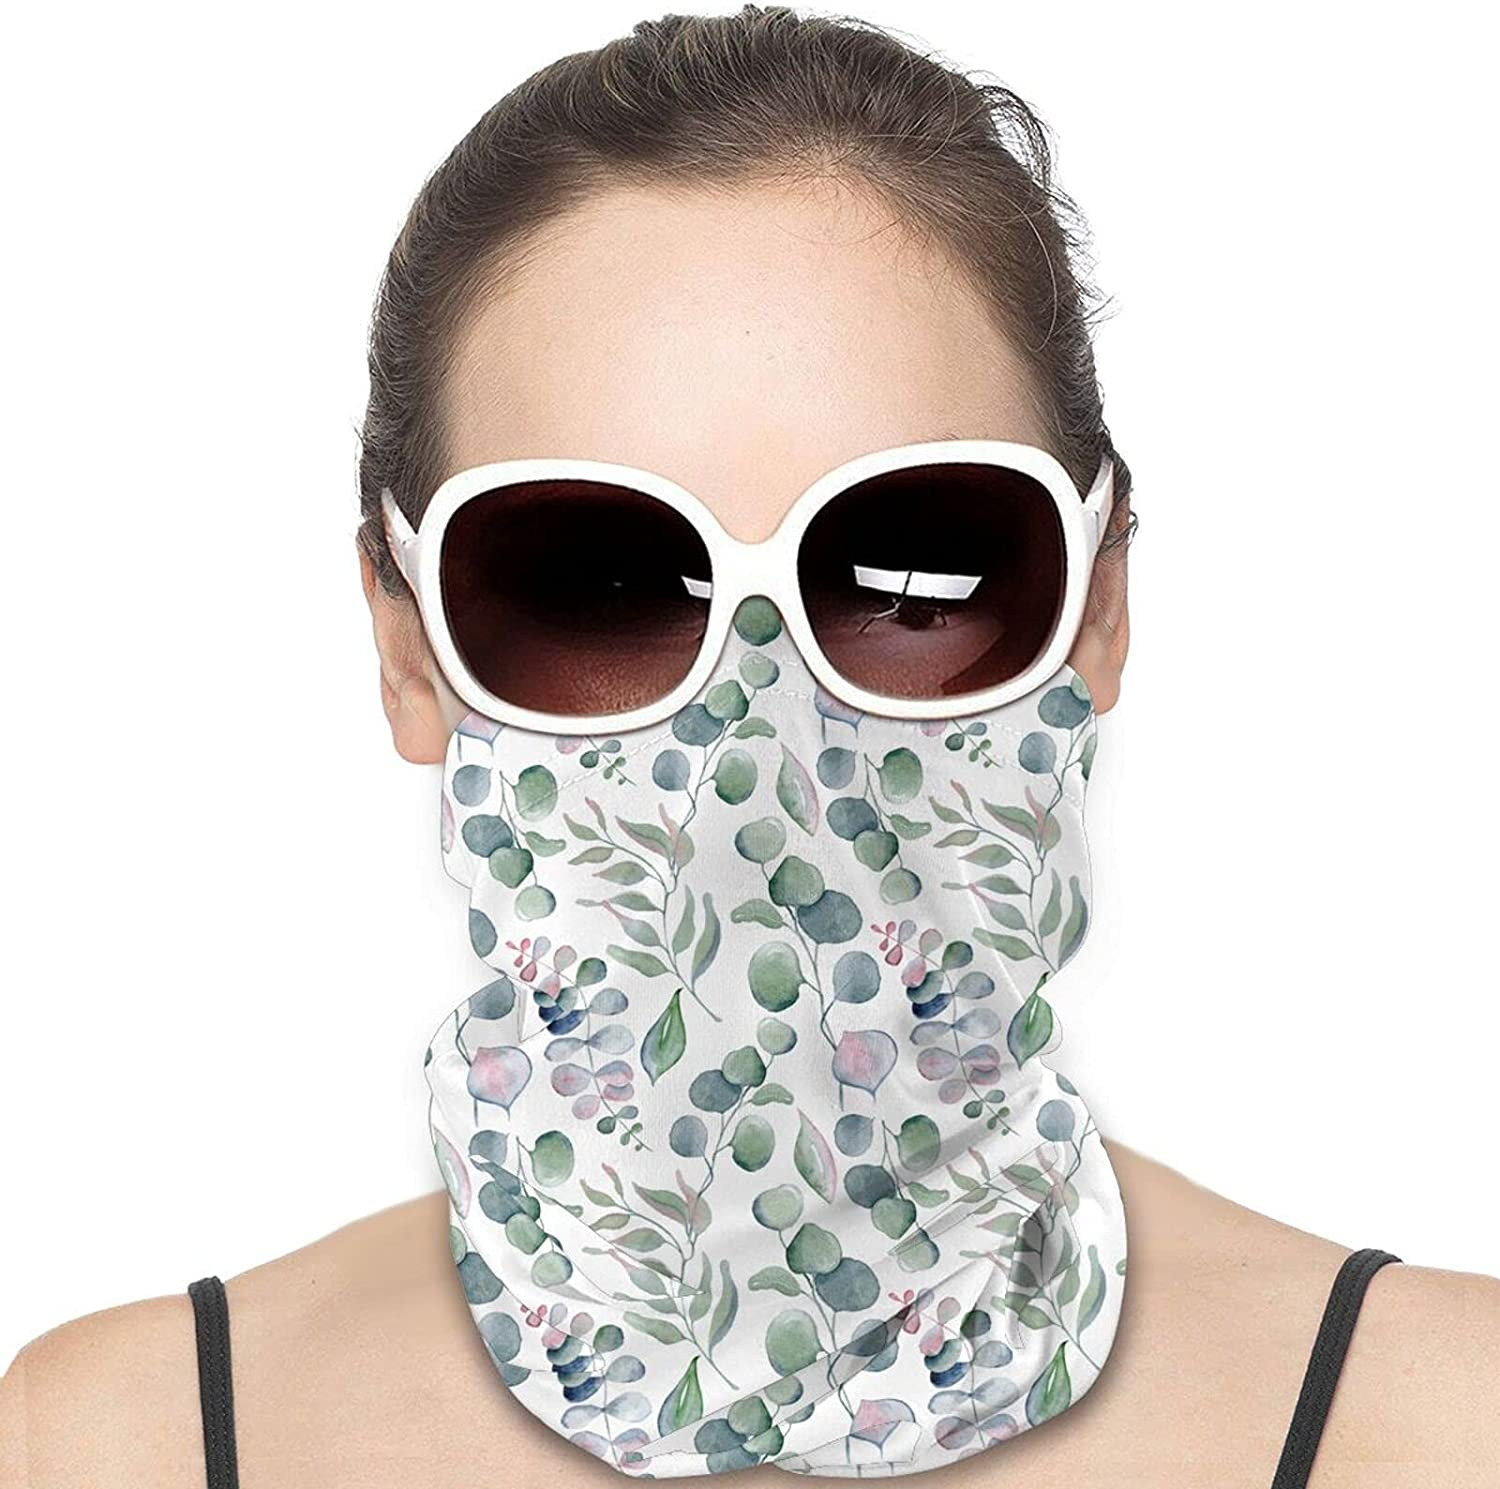 Paintings Of Flowers Round Neck Gaiter Bandnas Face Cover Uv Protection Prevent bask in Ice Scarf Headbands Perfect for Motorcycle Cycling Running Festival Raves Outdoors